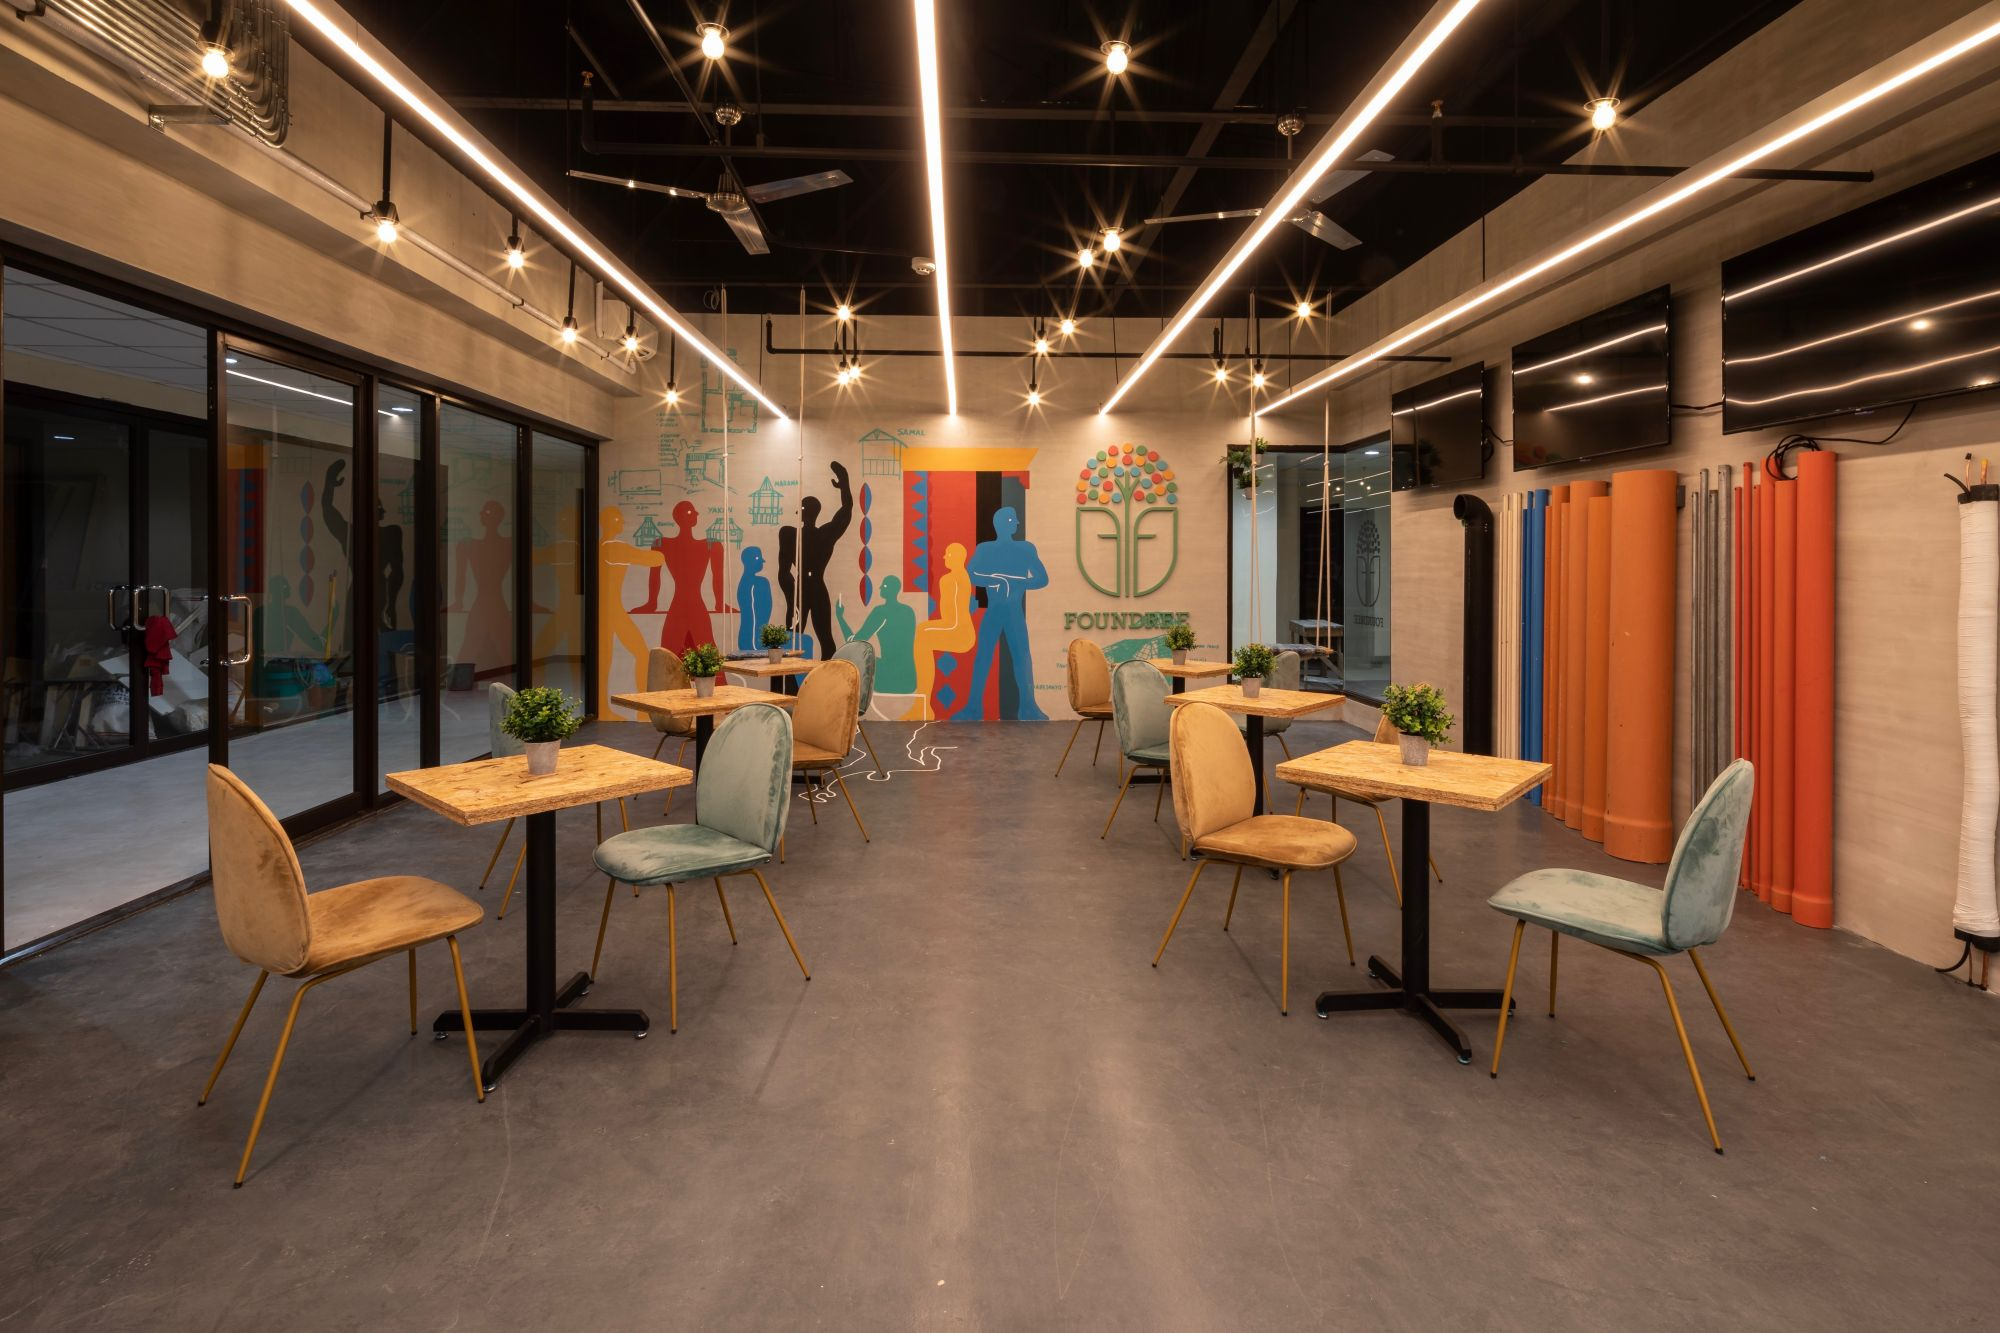 Foundree Breaks New Ground on Architectural Learning